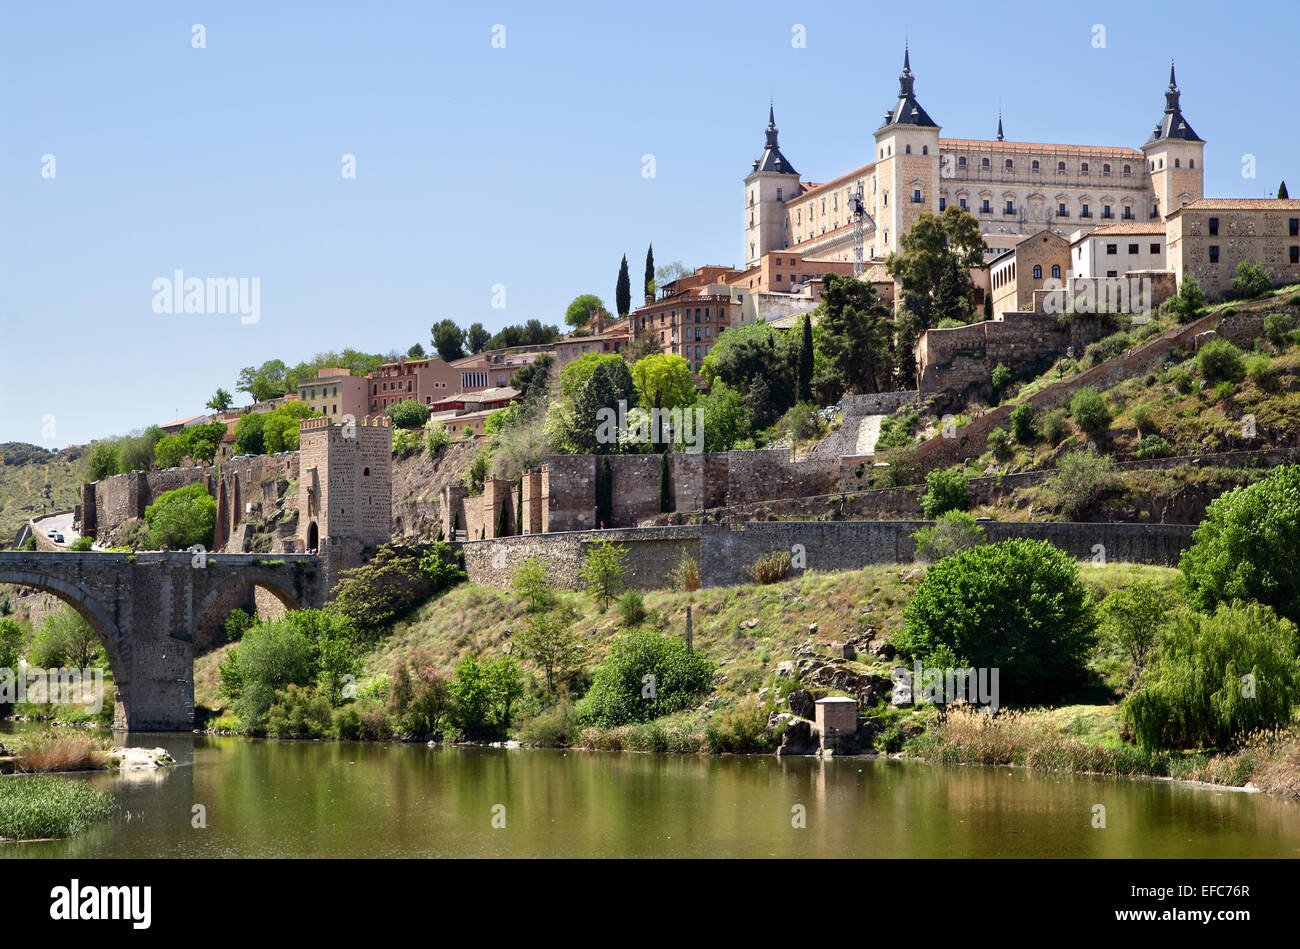 Toledo and Tagus river, Spain - Stock Image